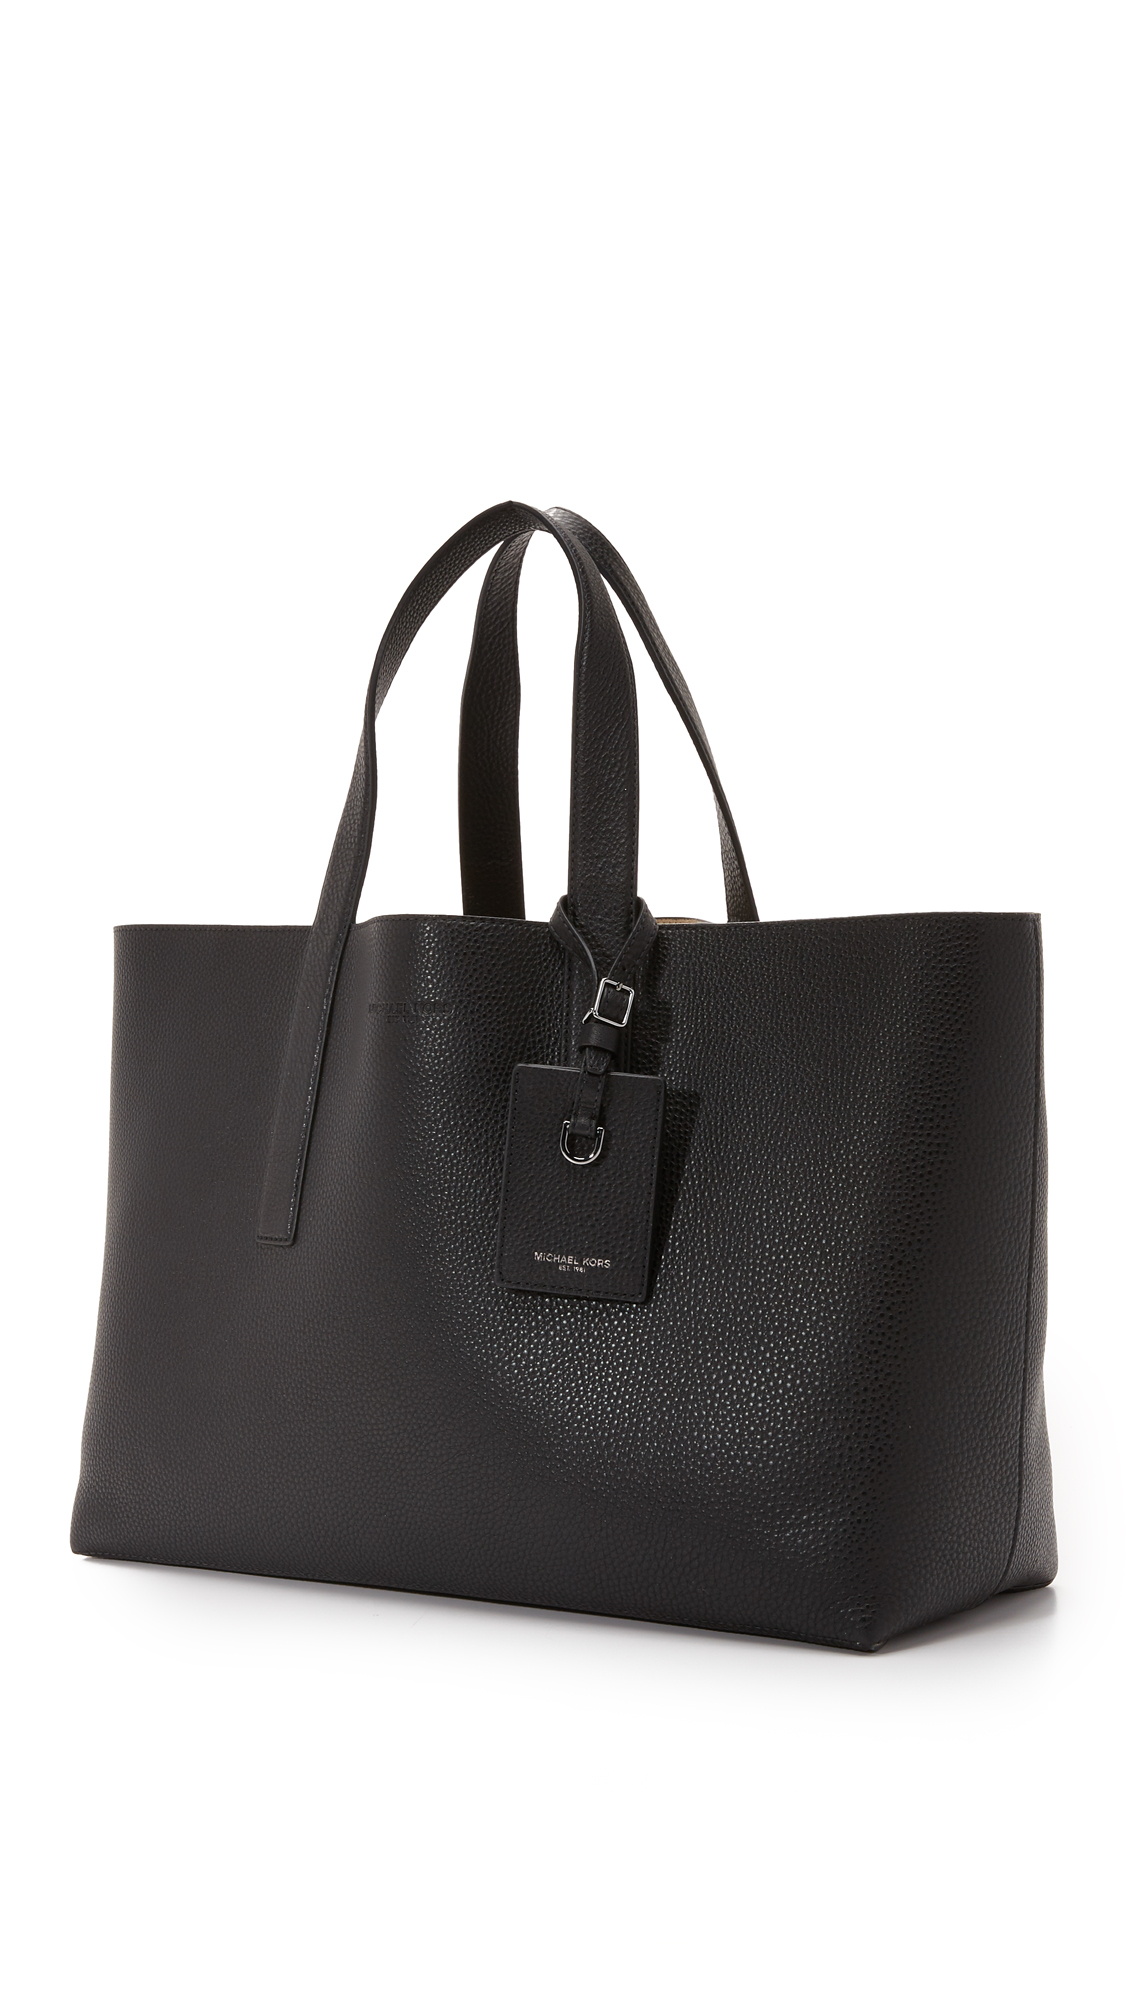 ee9b48d6710f Lyst - Michael Kors Mason East West Reversible Leather Tote in Black ...